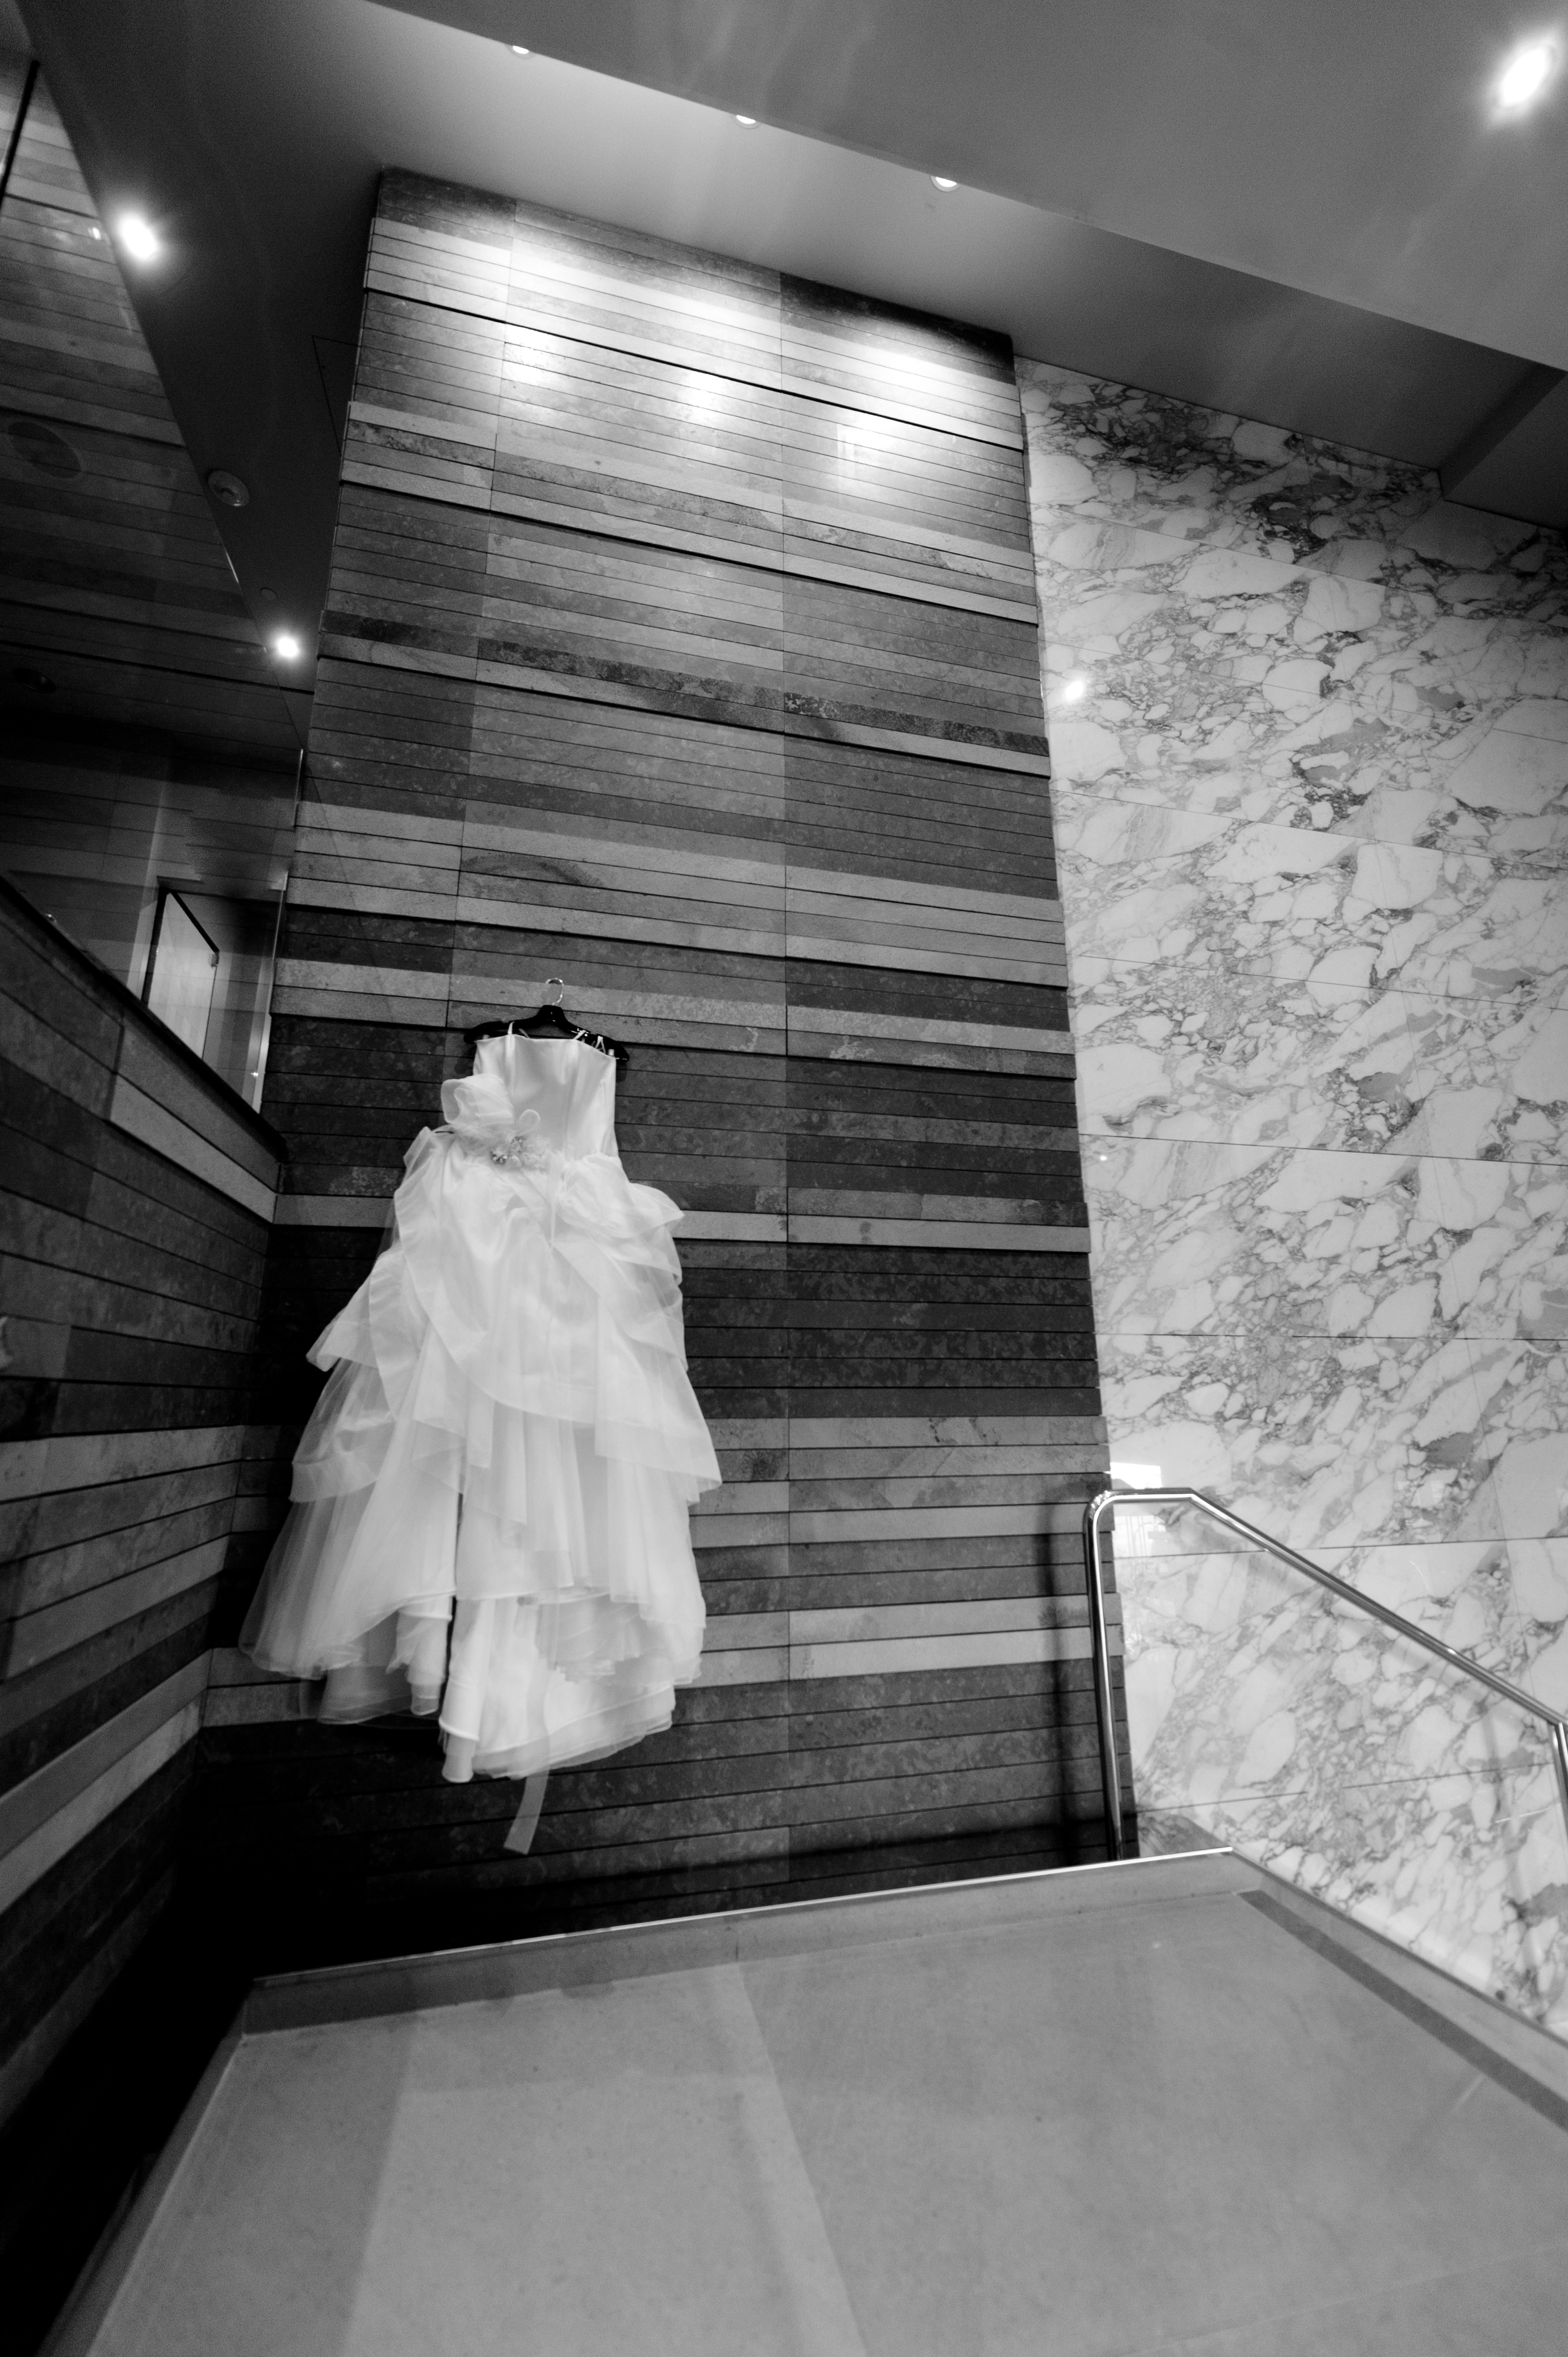 Eli and Ann Ebreo had the perfect most quintessential Seattle wedding, taking pictures in Nordstrom (which is strictly not allowed, but they got the hook up), the Four Seasons Hotel, and had views that overlooked the Sound and the Great Wheel. The couple then hopped in a bus with a wedding party and hit the town searching for different photo spots around the city. Could it get more Seattle then this?  Do you or somebody you know have a wedding you think deserves the spotlight? We LOVE (pun intended) documenting love stories, so email us at hello@seattlerefined.com to submit some wedding or engagement shots! (Image: Rick Takagi /http://ricktakagi.zenfolio.com/eli)